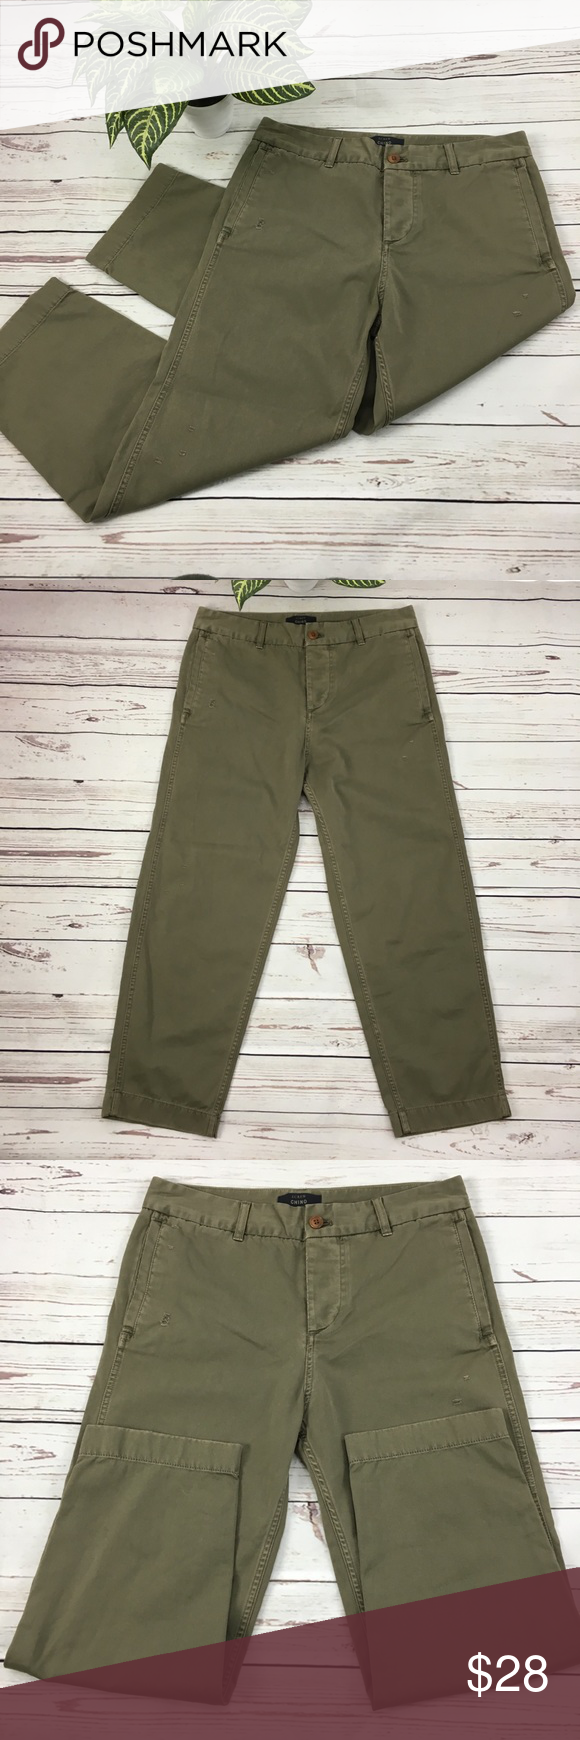 9a23d30284e53 J.CREW Broken-in Boyfriend CHINO Pants in Olive 8P J.CREW Petite Broken-in CHINO  Pants in Olive - Intentionally distressed throughout. Size 8 PETITE Chinos  ...